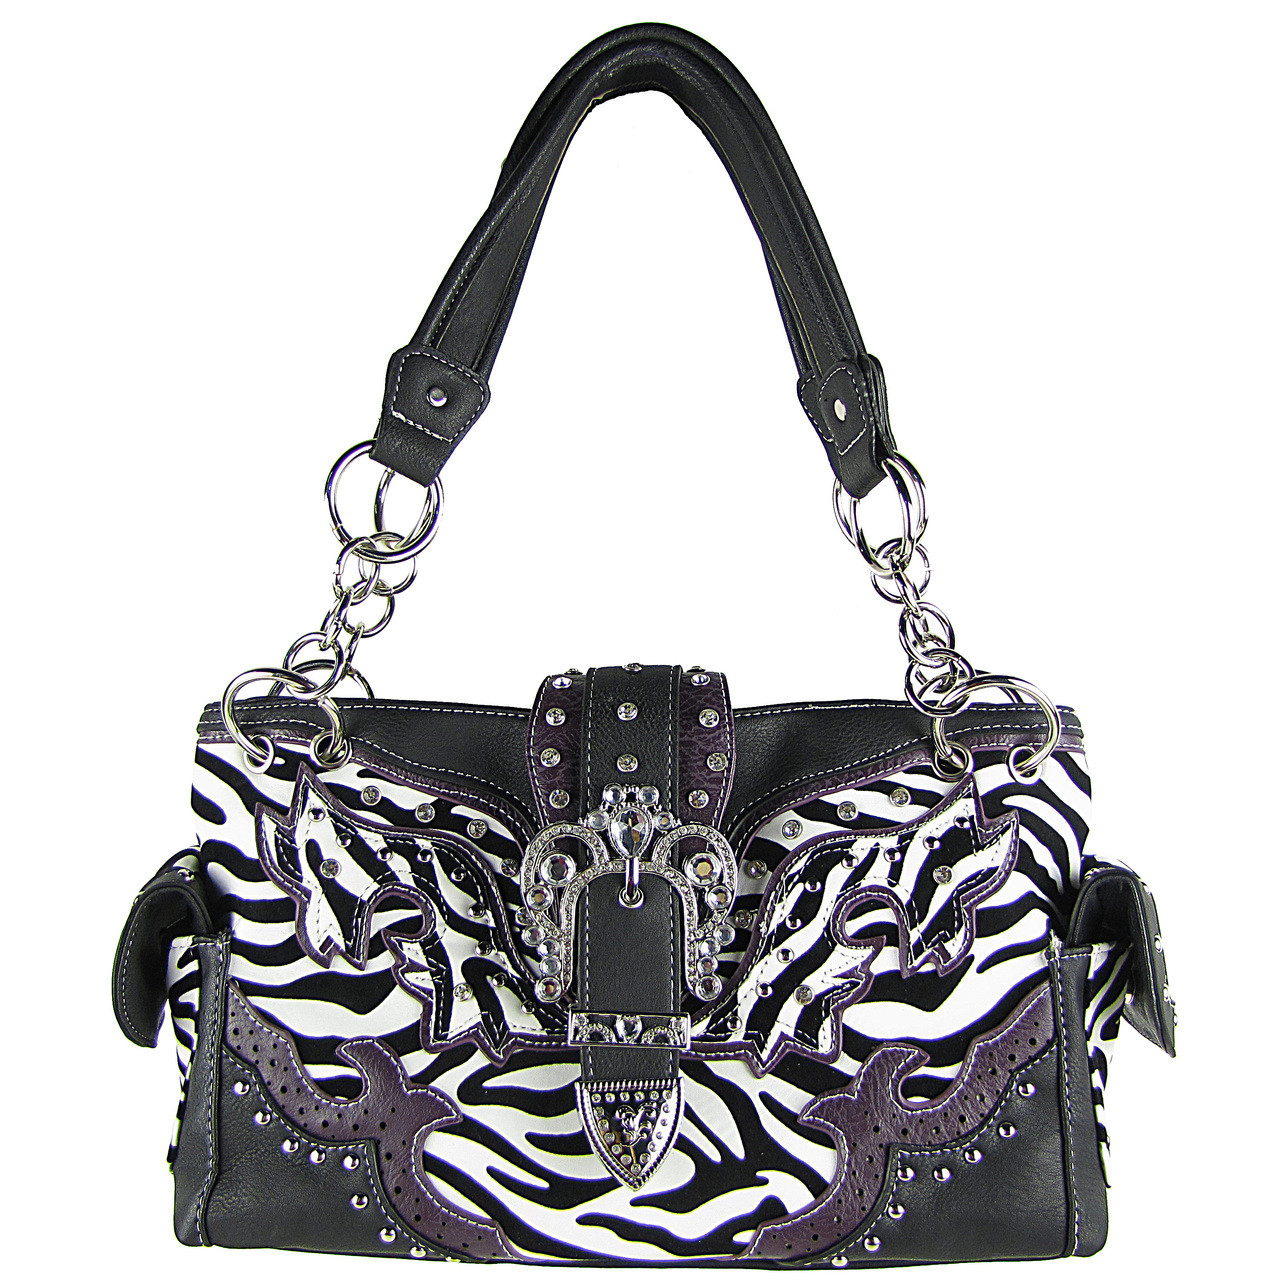 PURPLE ZEBRA STUDDED BUCKLE RHINESTONE LOOK SHOULDER HANDBAG HB1-W37FZPPL